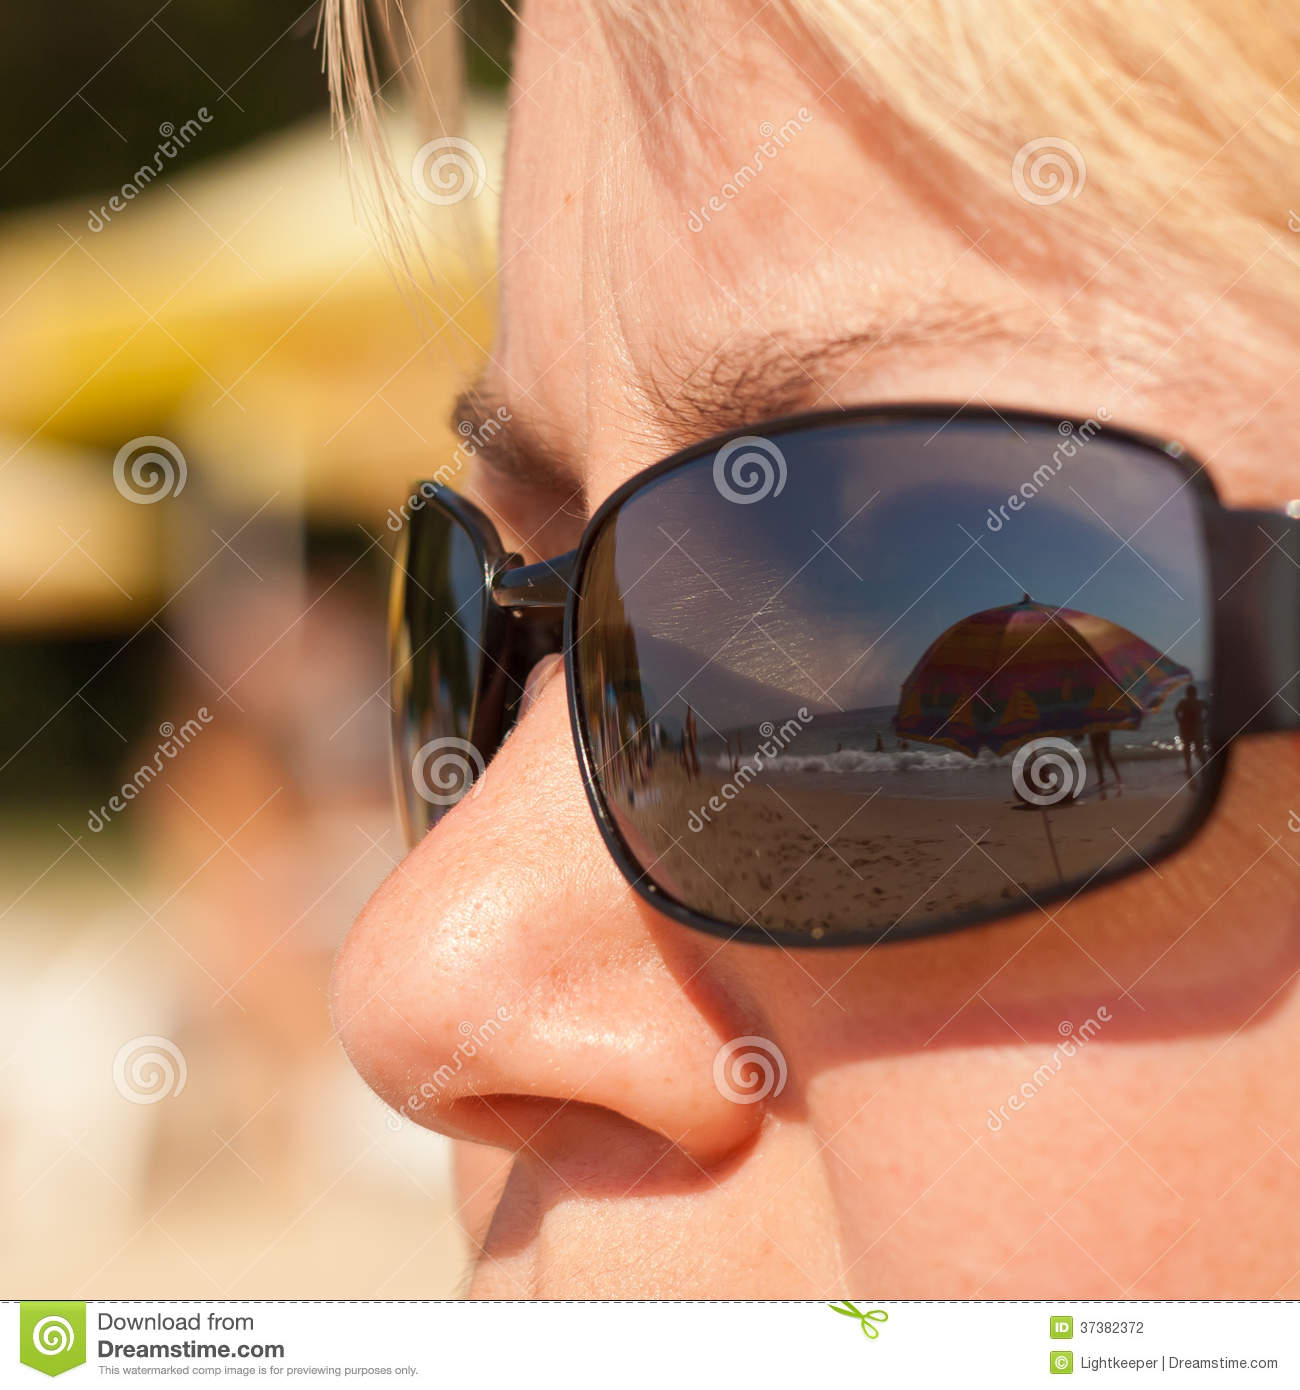 Vision Of Summer Vacation Stock Photo. Image Of Woman